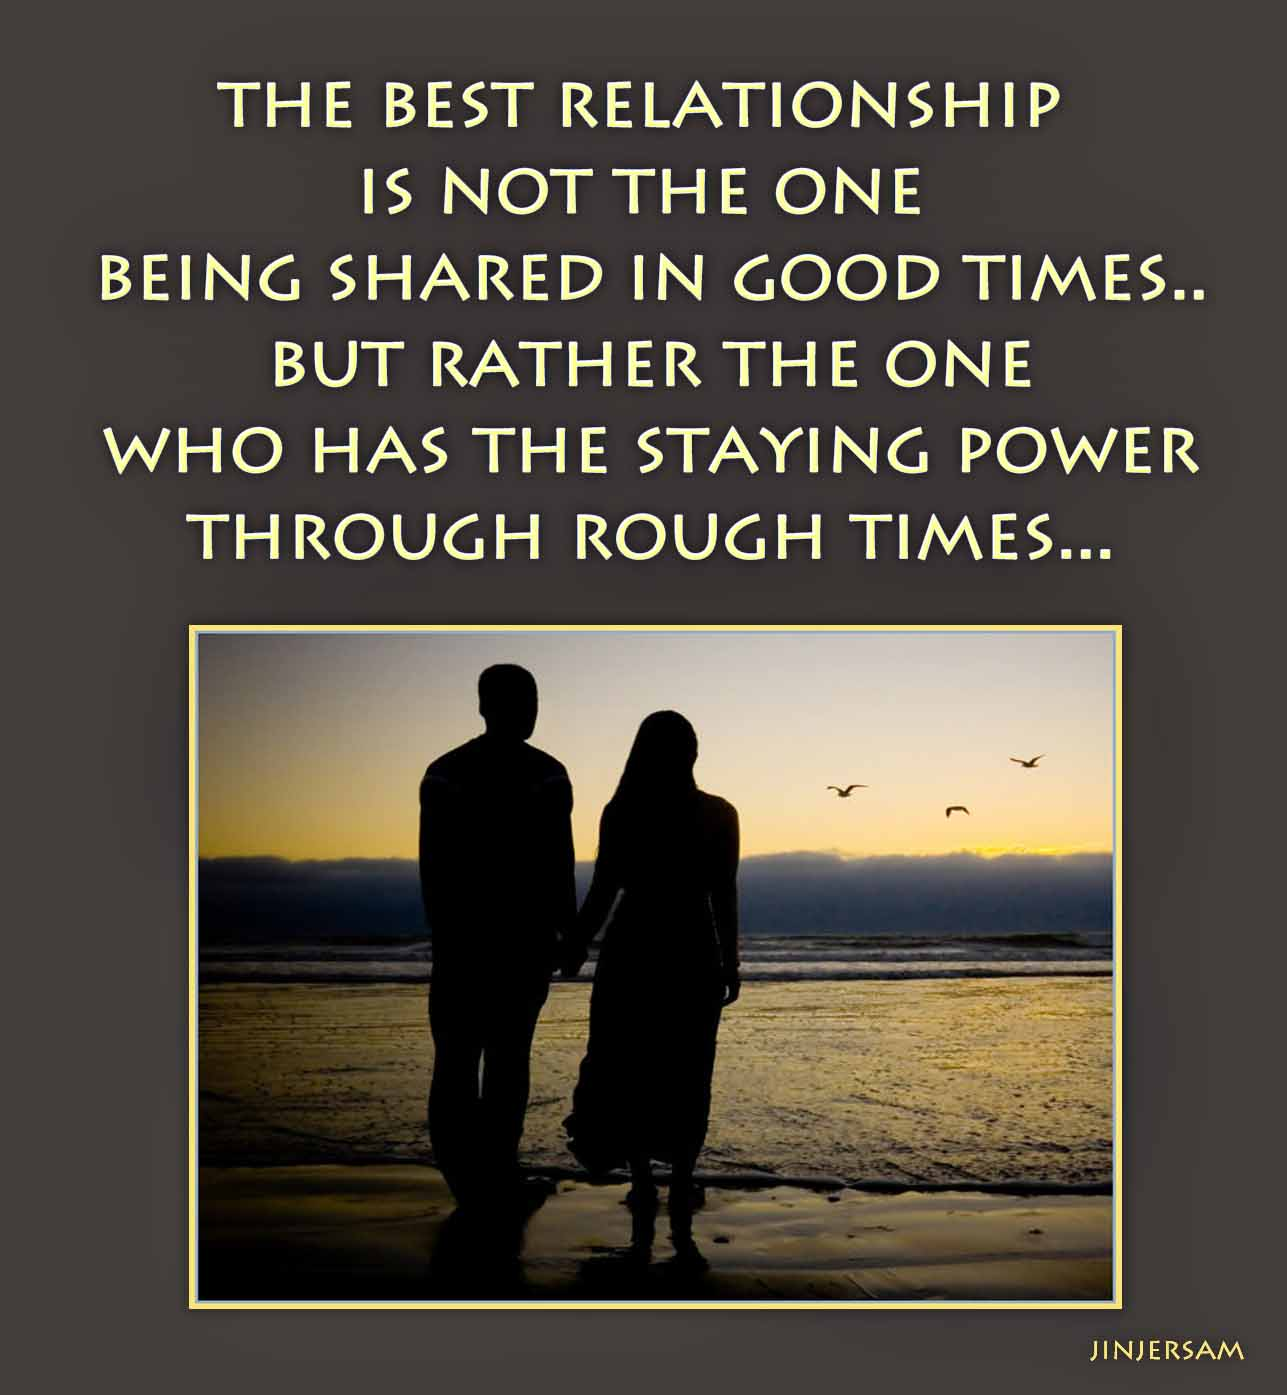 What is a good relationship